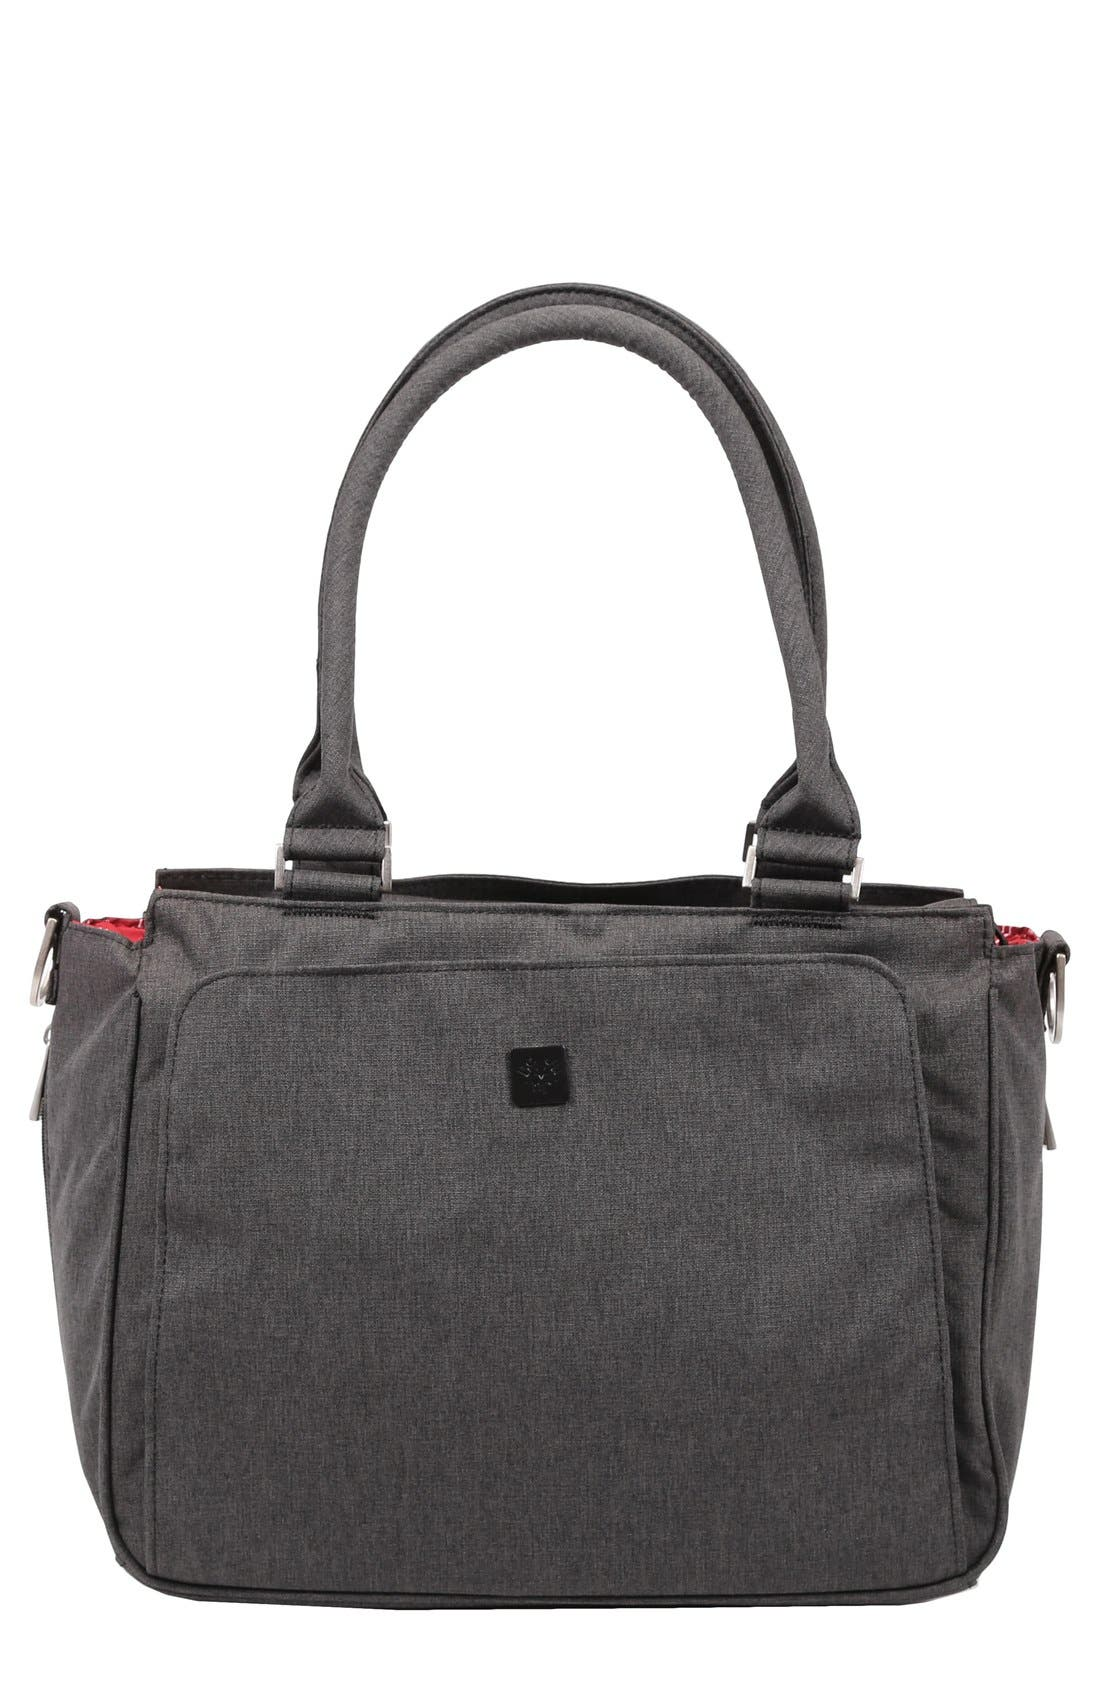 'Be Classy - Onyx Collection' Messenger Diaper Bag,                             Main thumbnail 1, color,                             CHROME